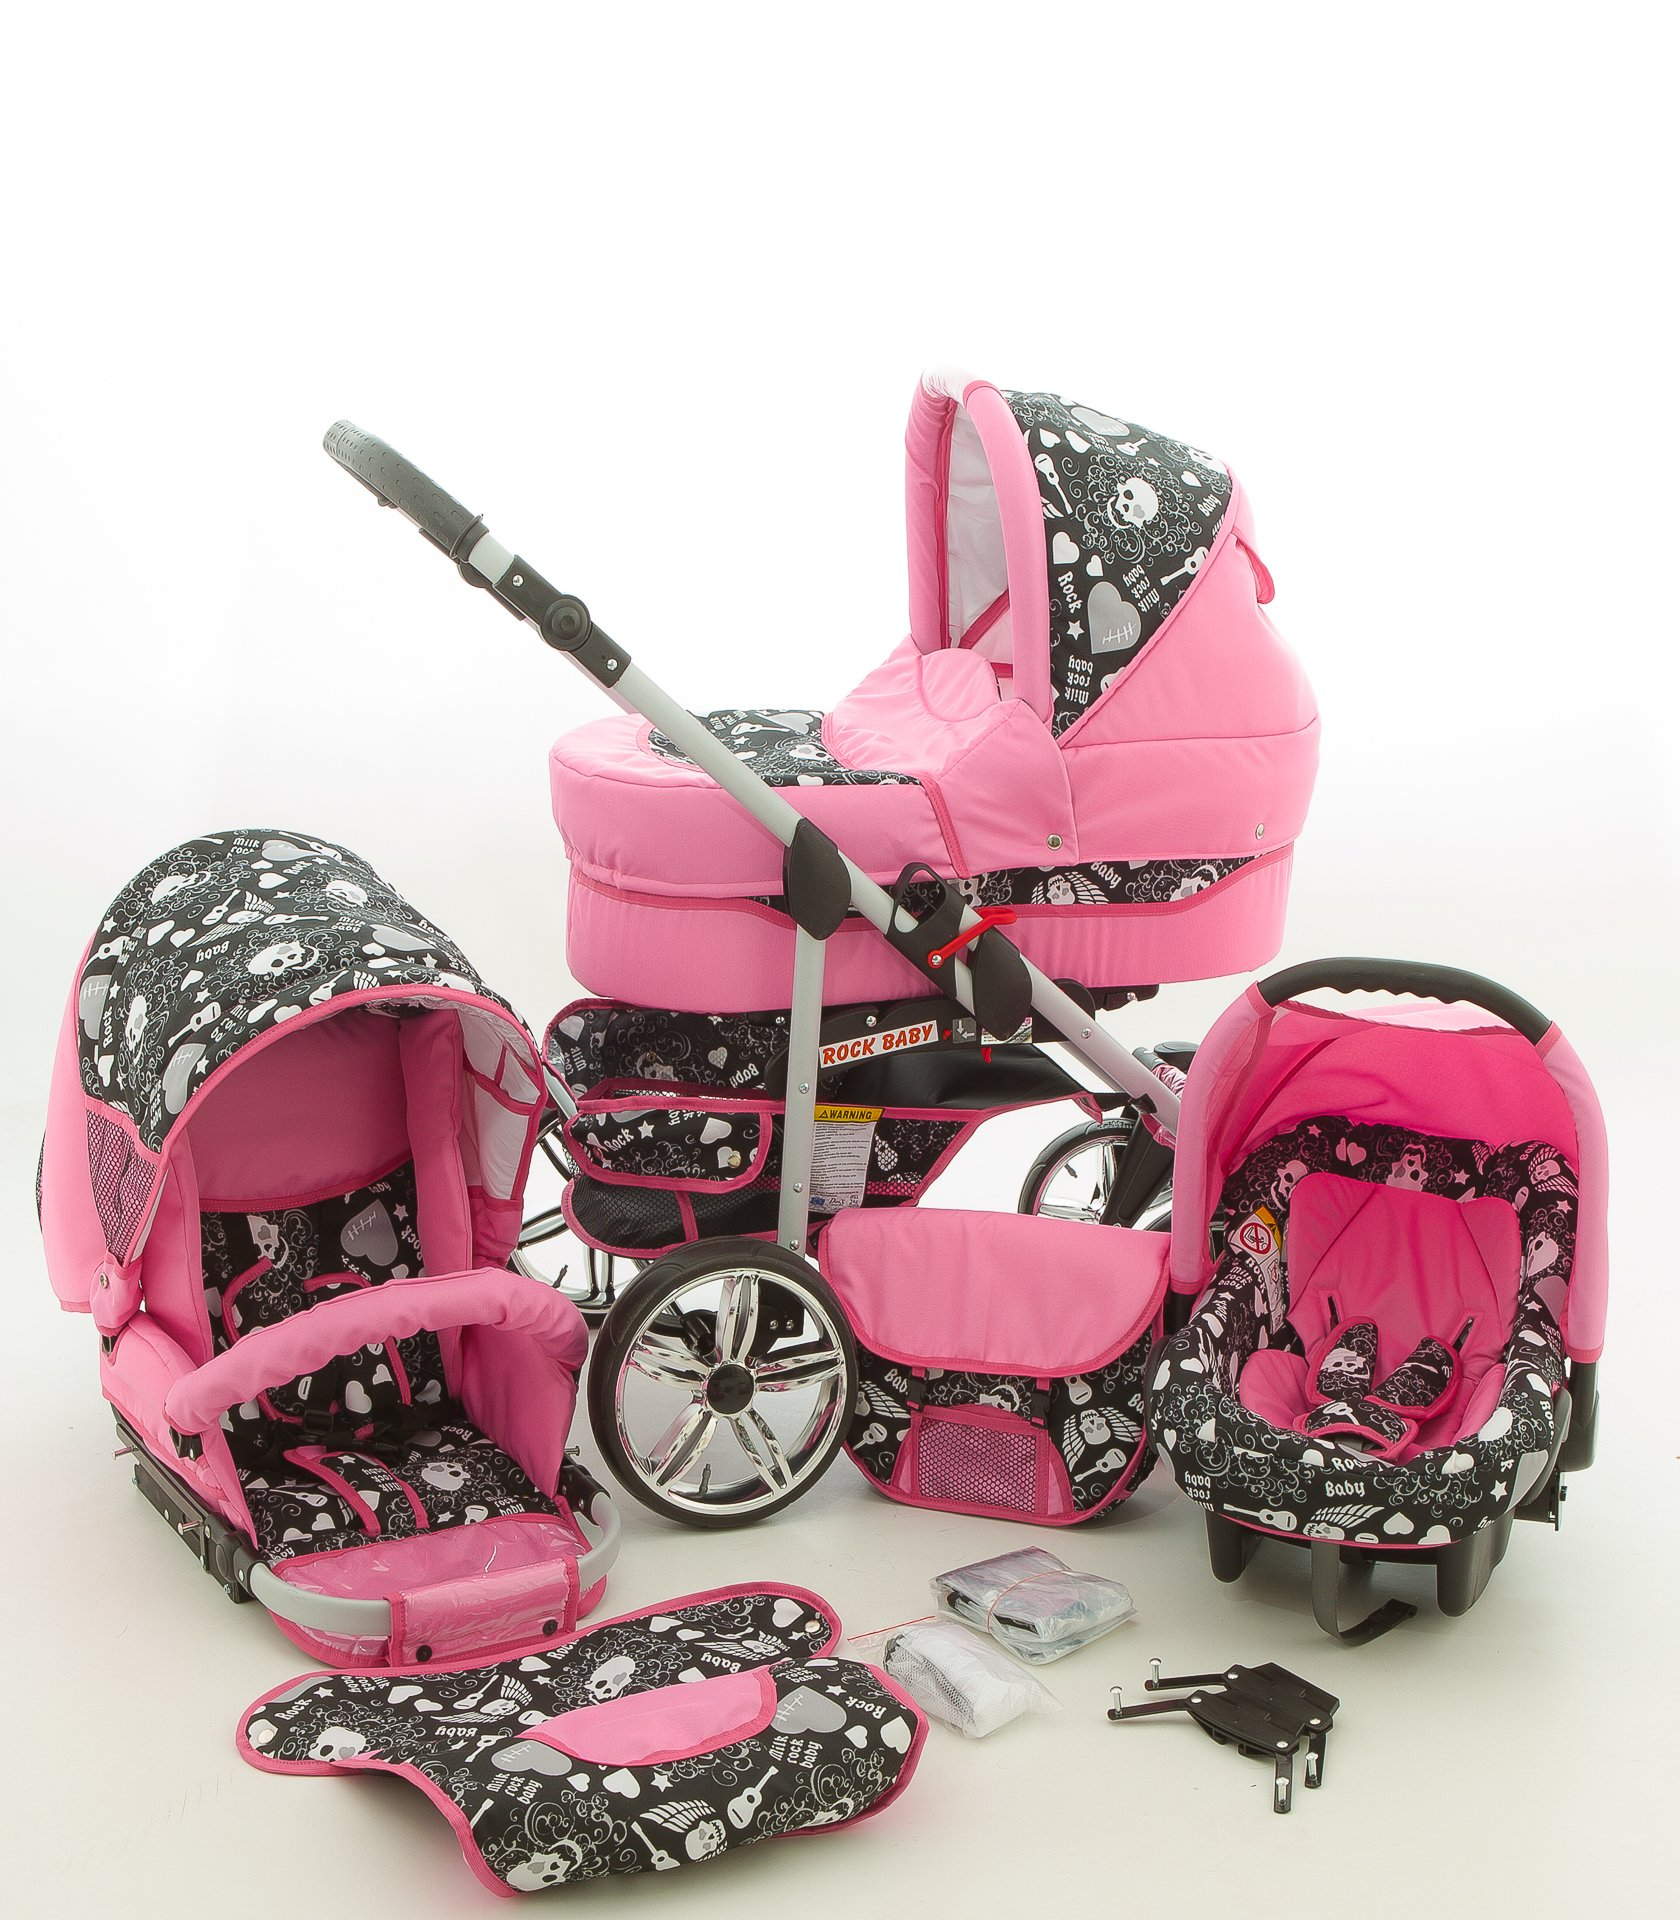 Milk Rock Baby Rock Baby Pram & Pushchair Travel System (car seat & adapter, raincover, mosquito net, swivel wheels) 04 pink & skull Milk Rock Baby Stroller with accessories all included 3 free items More information on www.youtube.com/Lux4Kids Sturdy steel construction, height-adjustable handlebars, adjustable hood hood, converts into a stroller and many pl Made in the EU (DIN EN1888/2005) 1